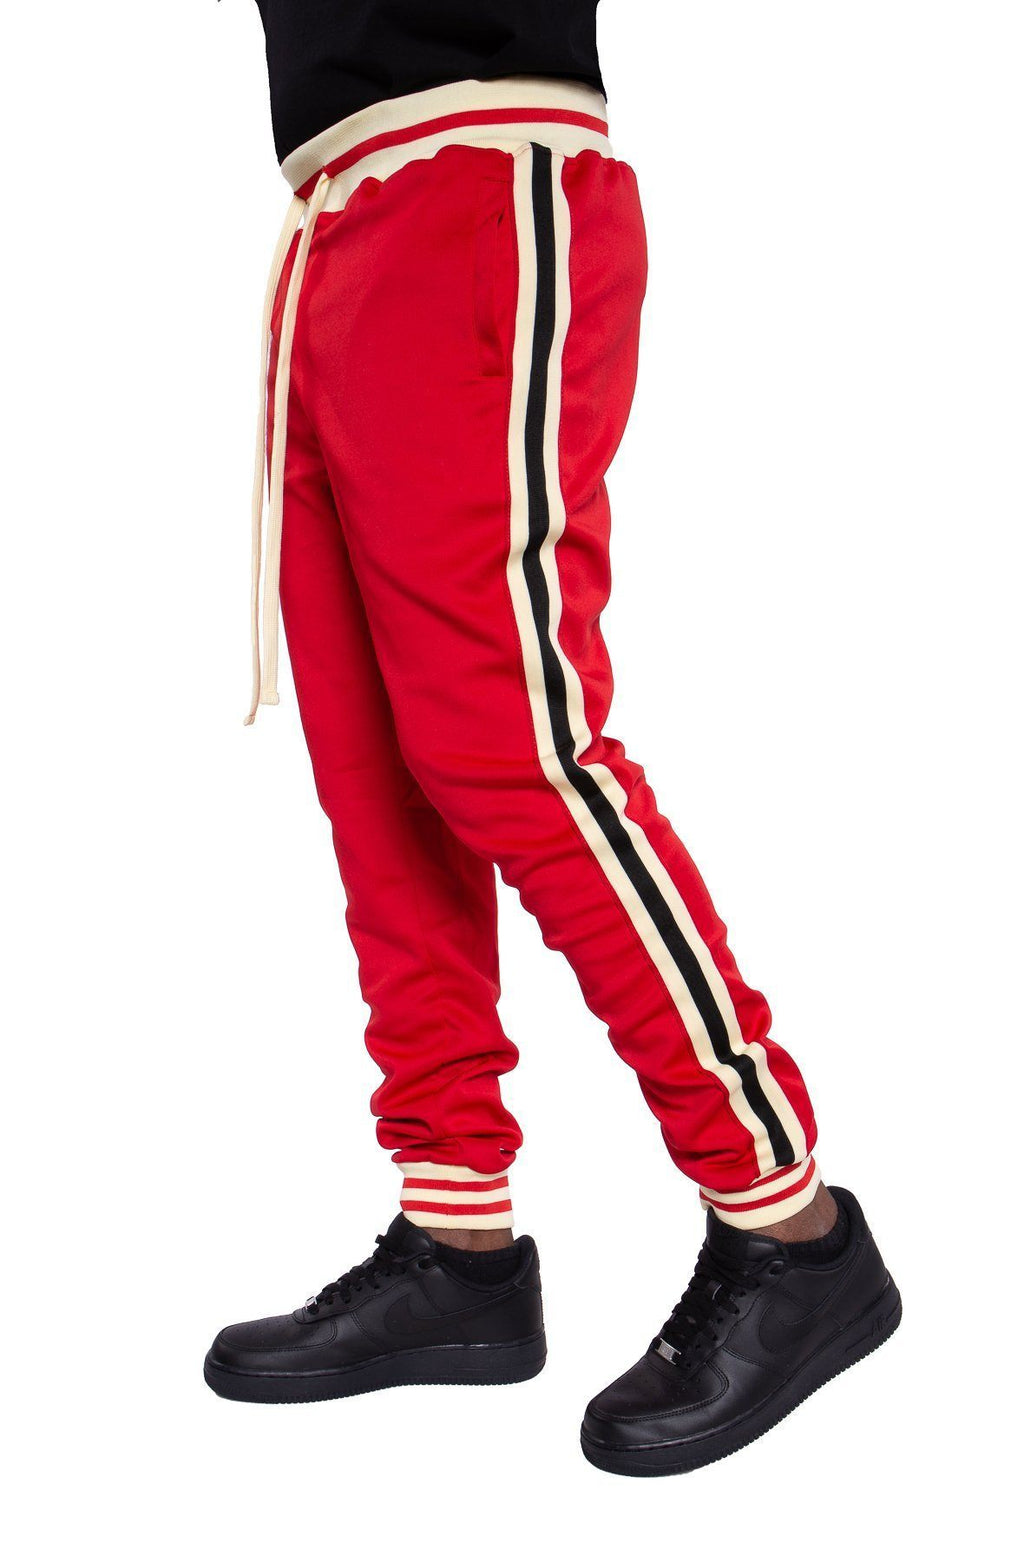 The Elite Track Pants